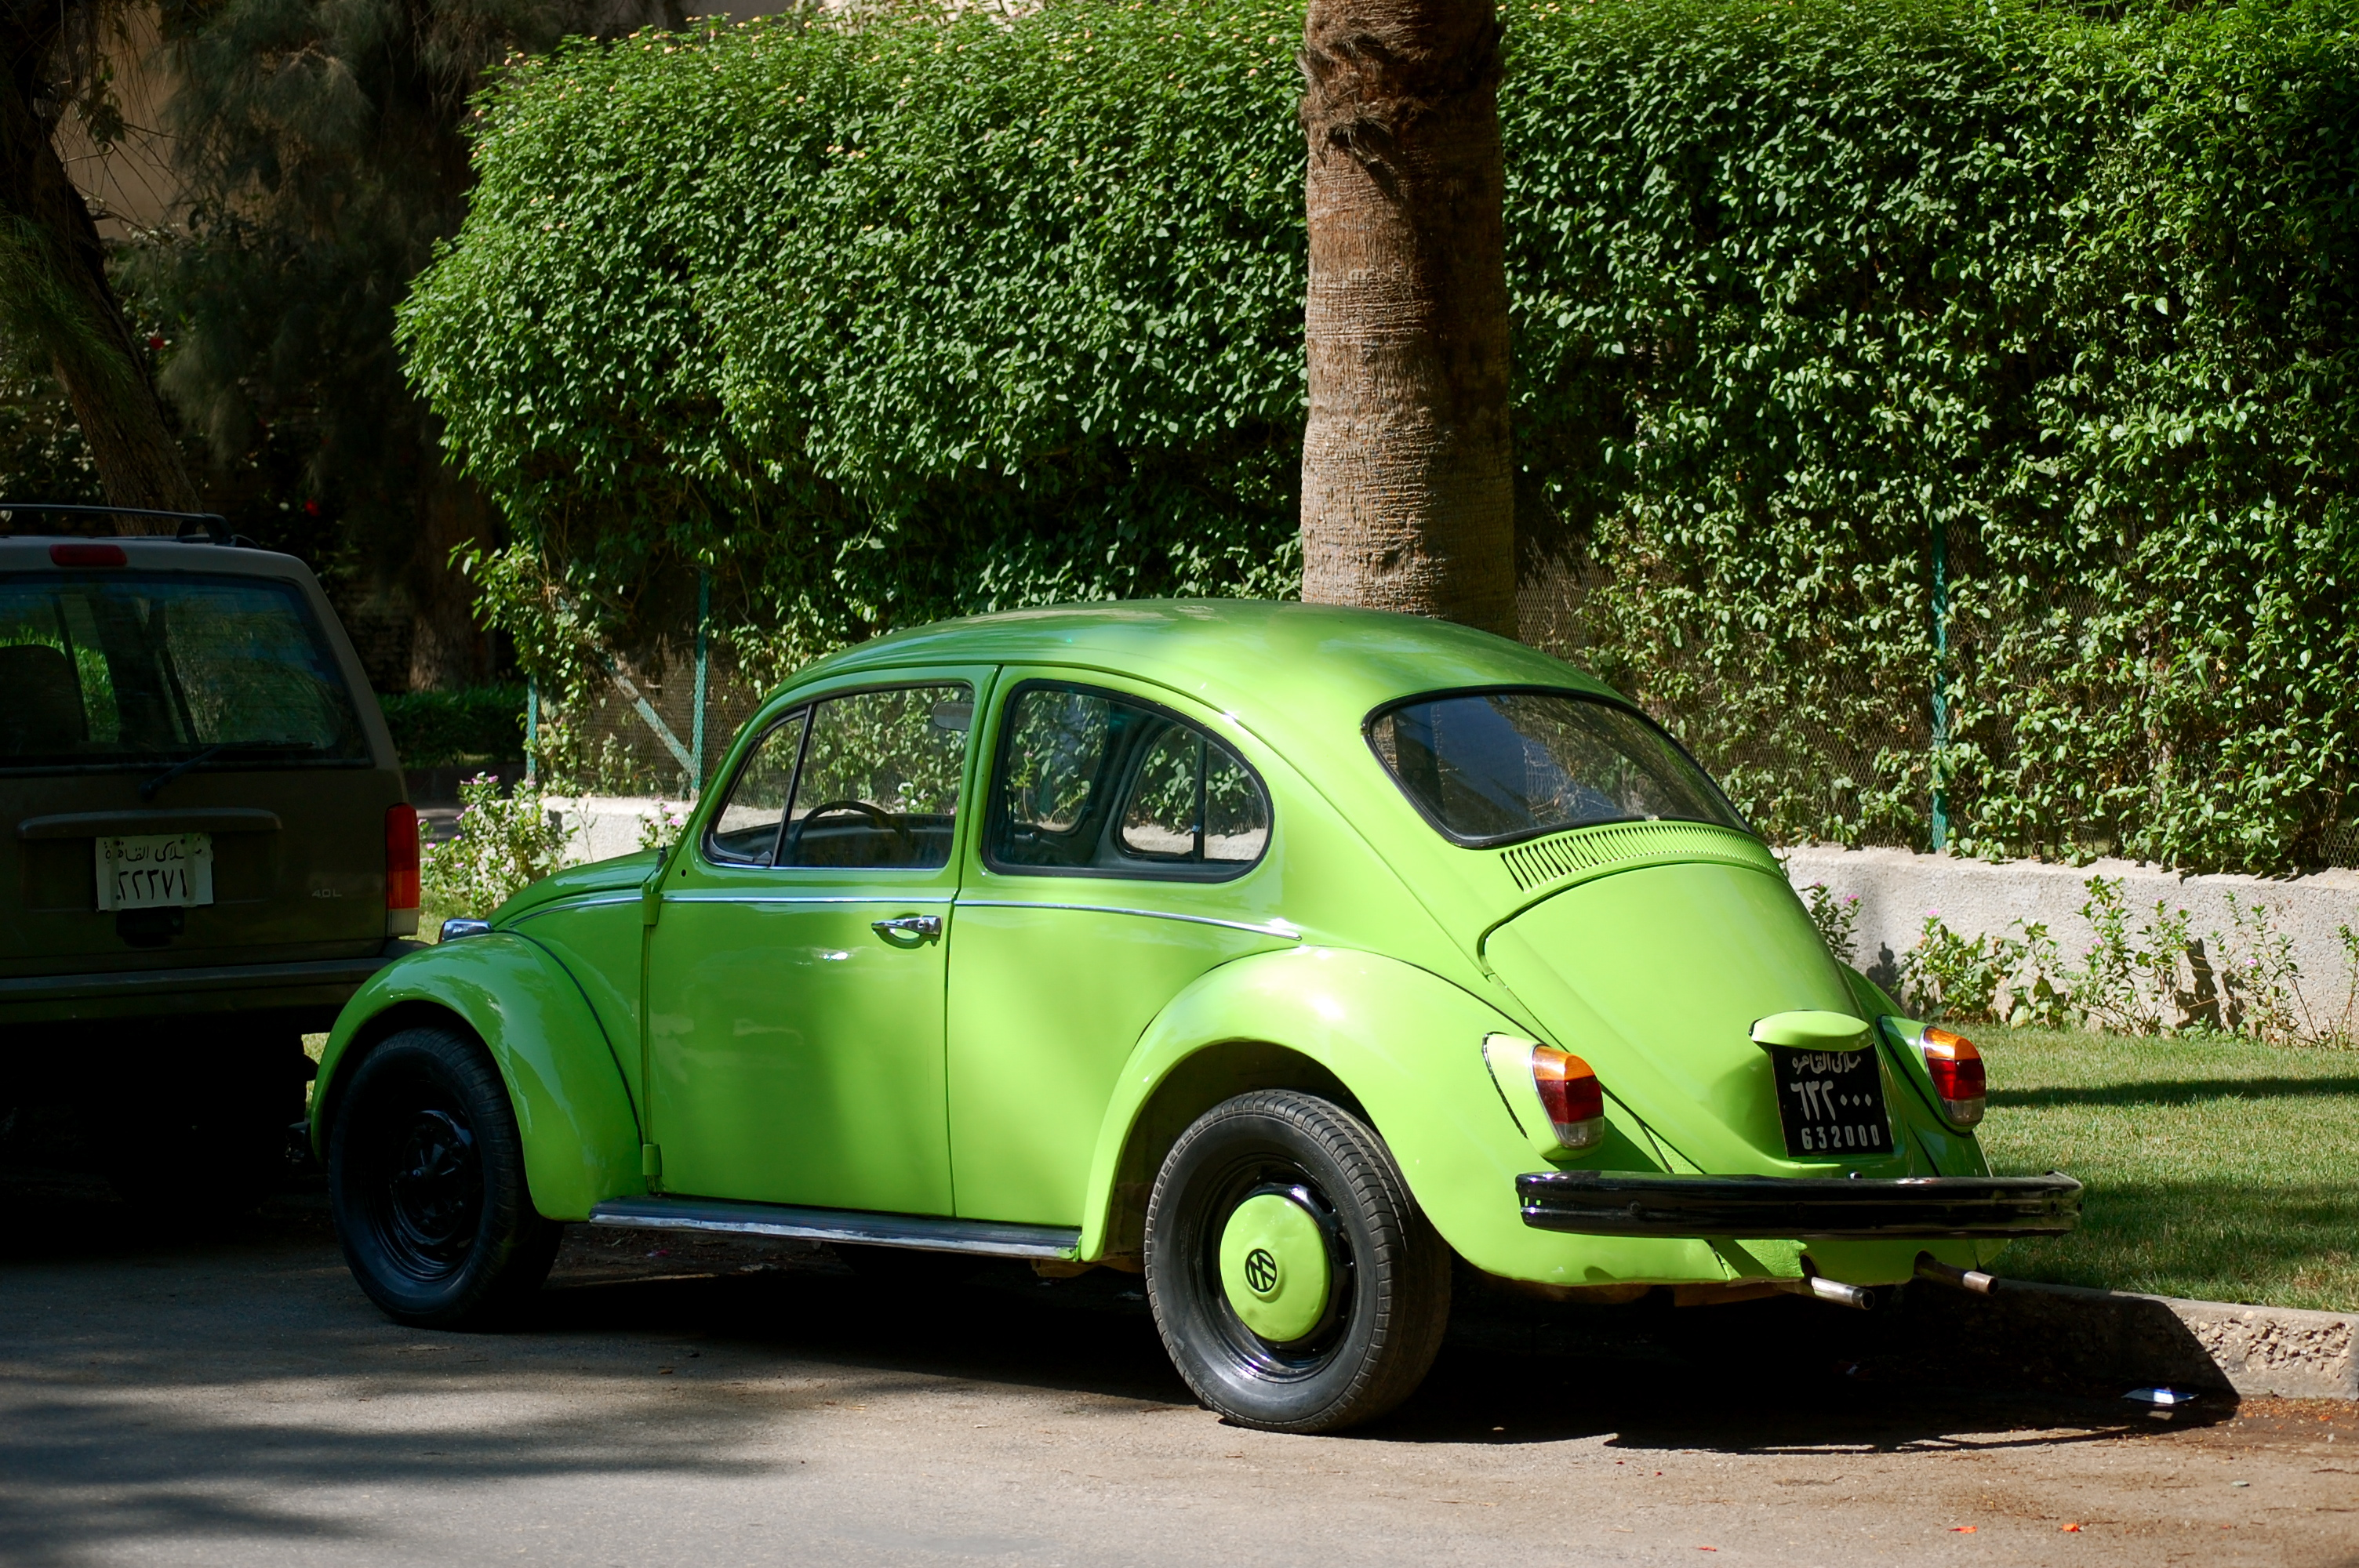 Lime green beetle car